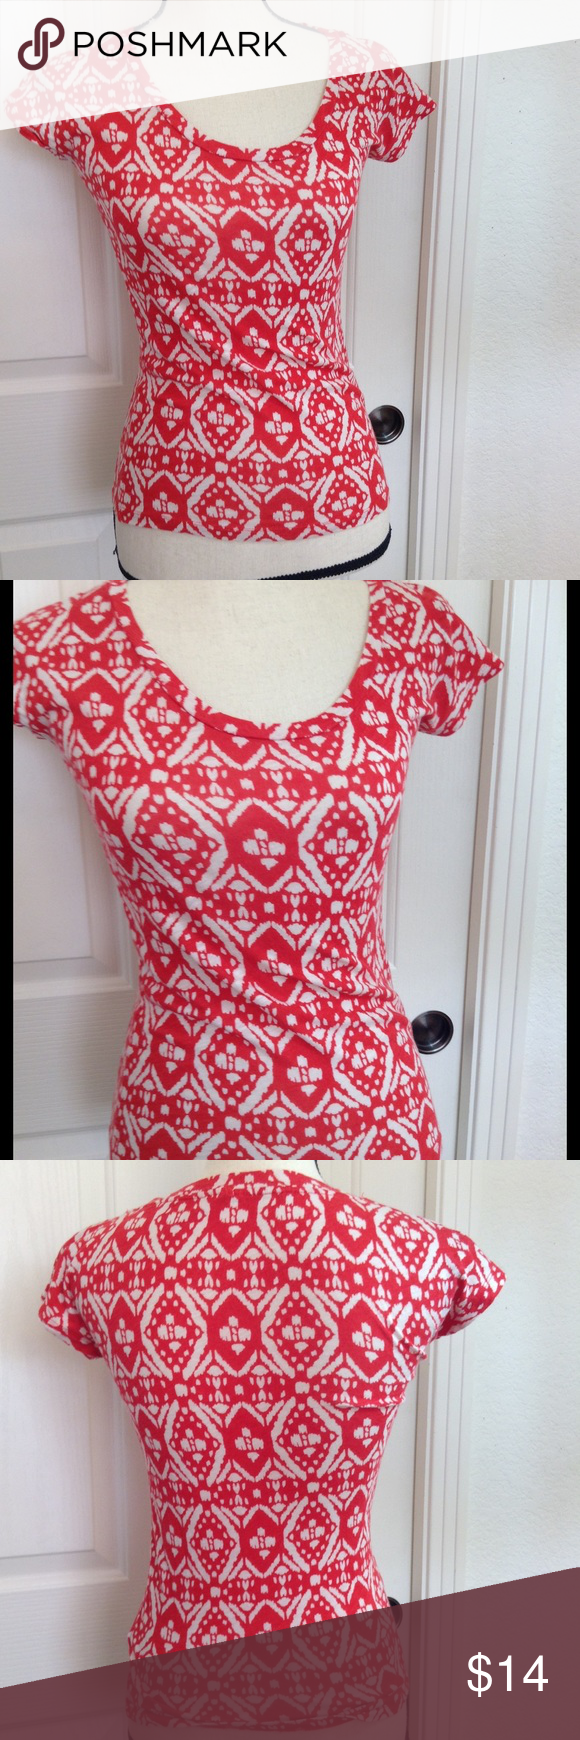 J. Crew Shirt Red & Cream Print XXS Top Women's -like new no flaws or issues j crew J. Crew Tops Tees - Short Sleeve